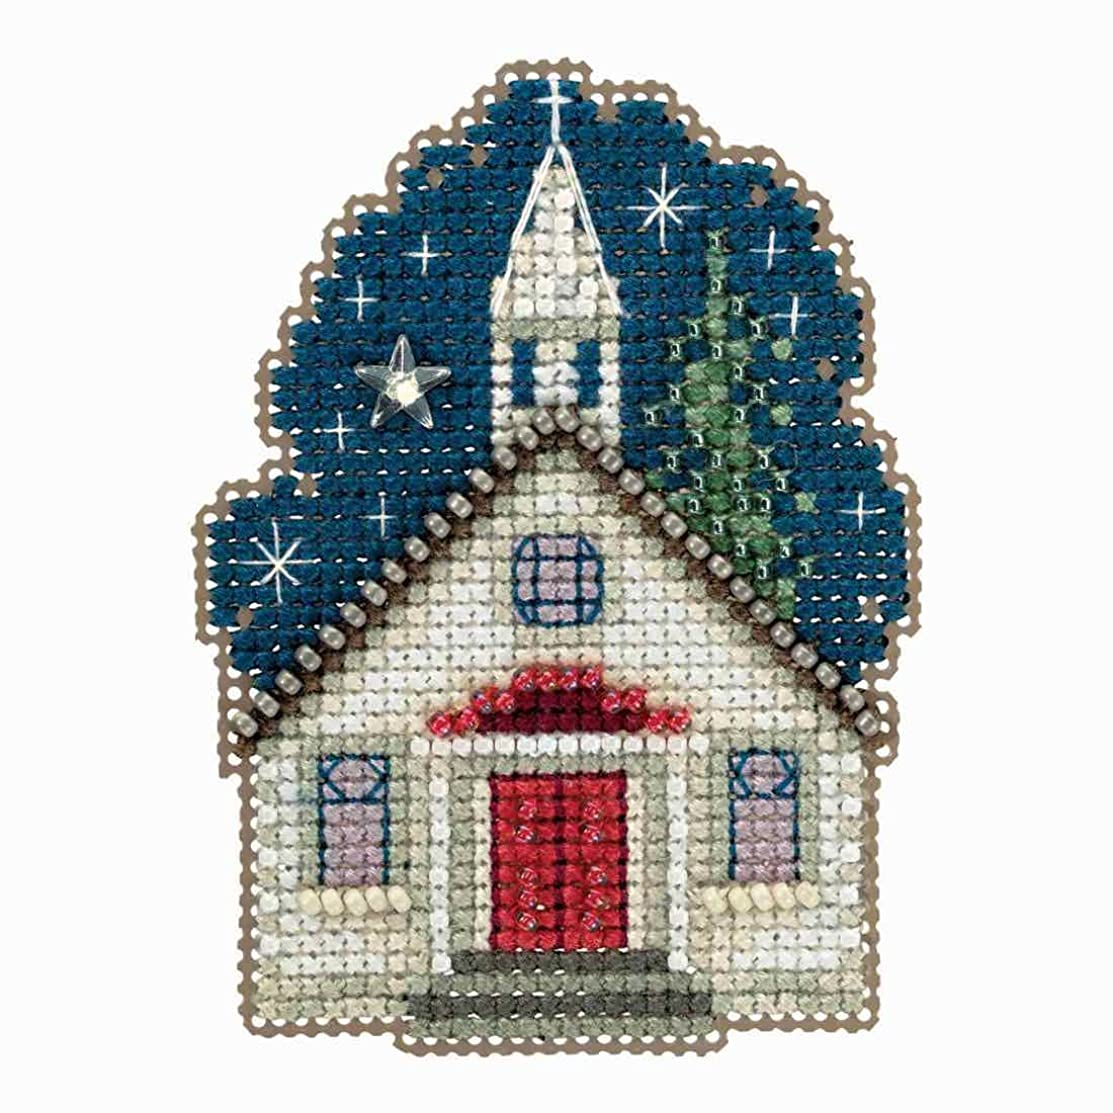 Sunday Night Beaded Counted Cross Stitch Ornament Kit Mill Hill 2018 Winter Holiday MH181834